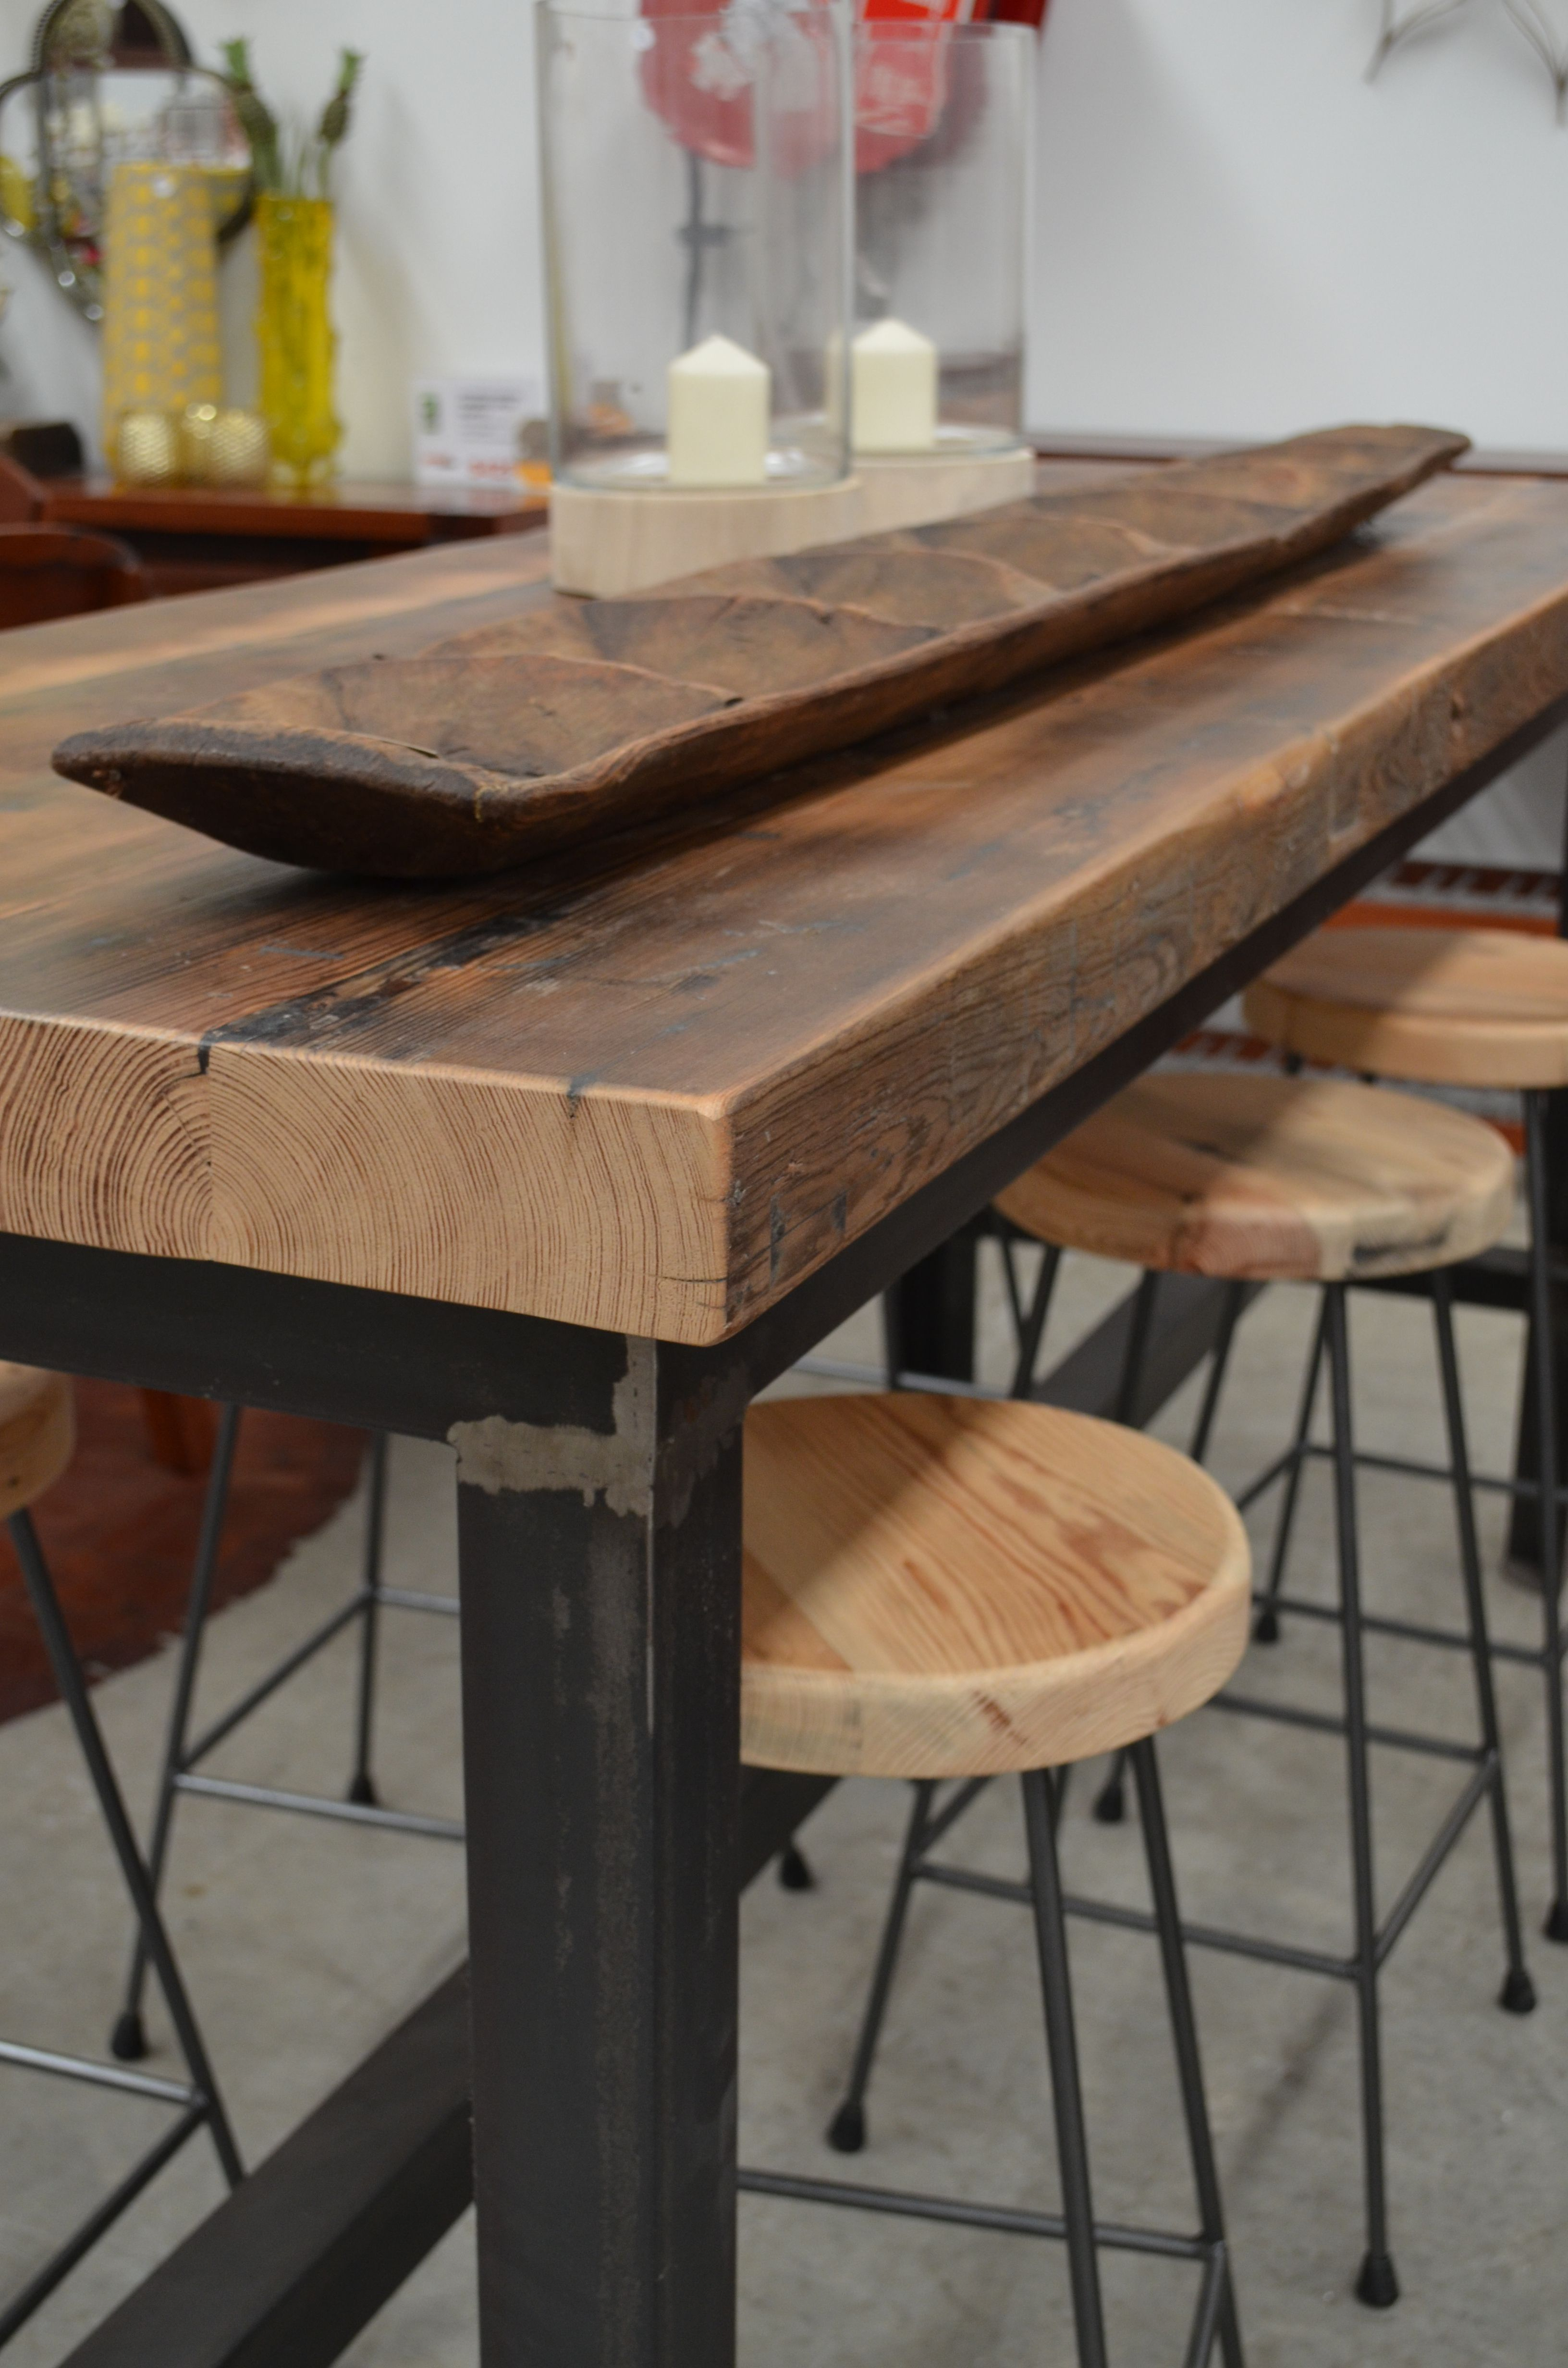 Industrial Bar Table And Stools The Perfect Furnishings For Indoor And Outdoor Entertaining The General Store Bartisch Stehtisch Und Hocker Esstisch Bank